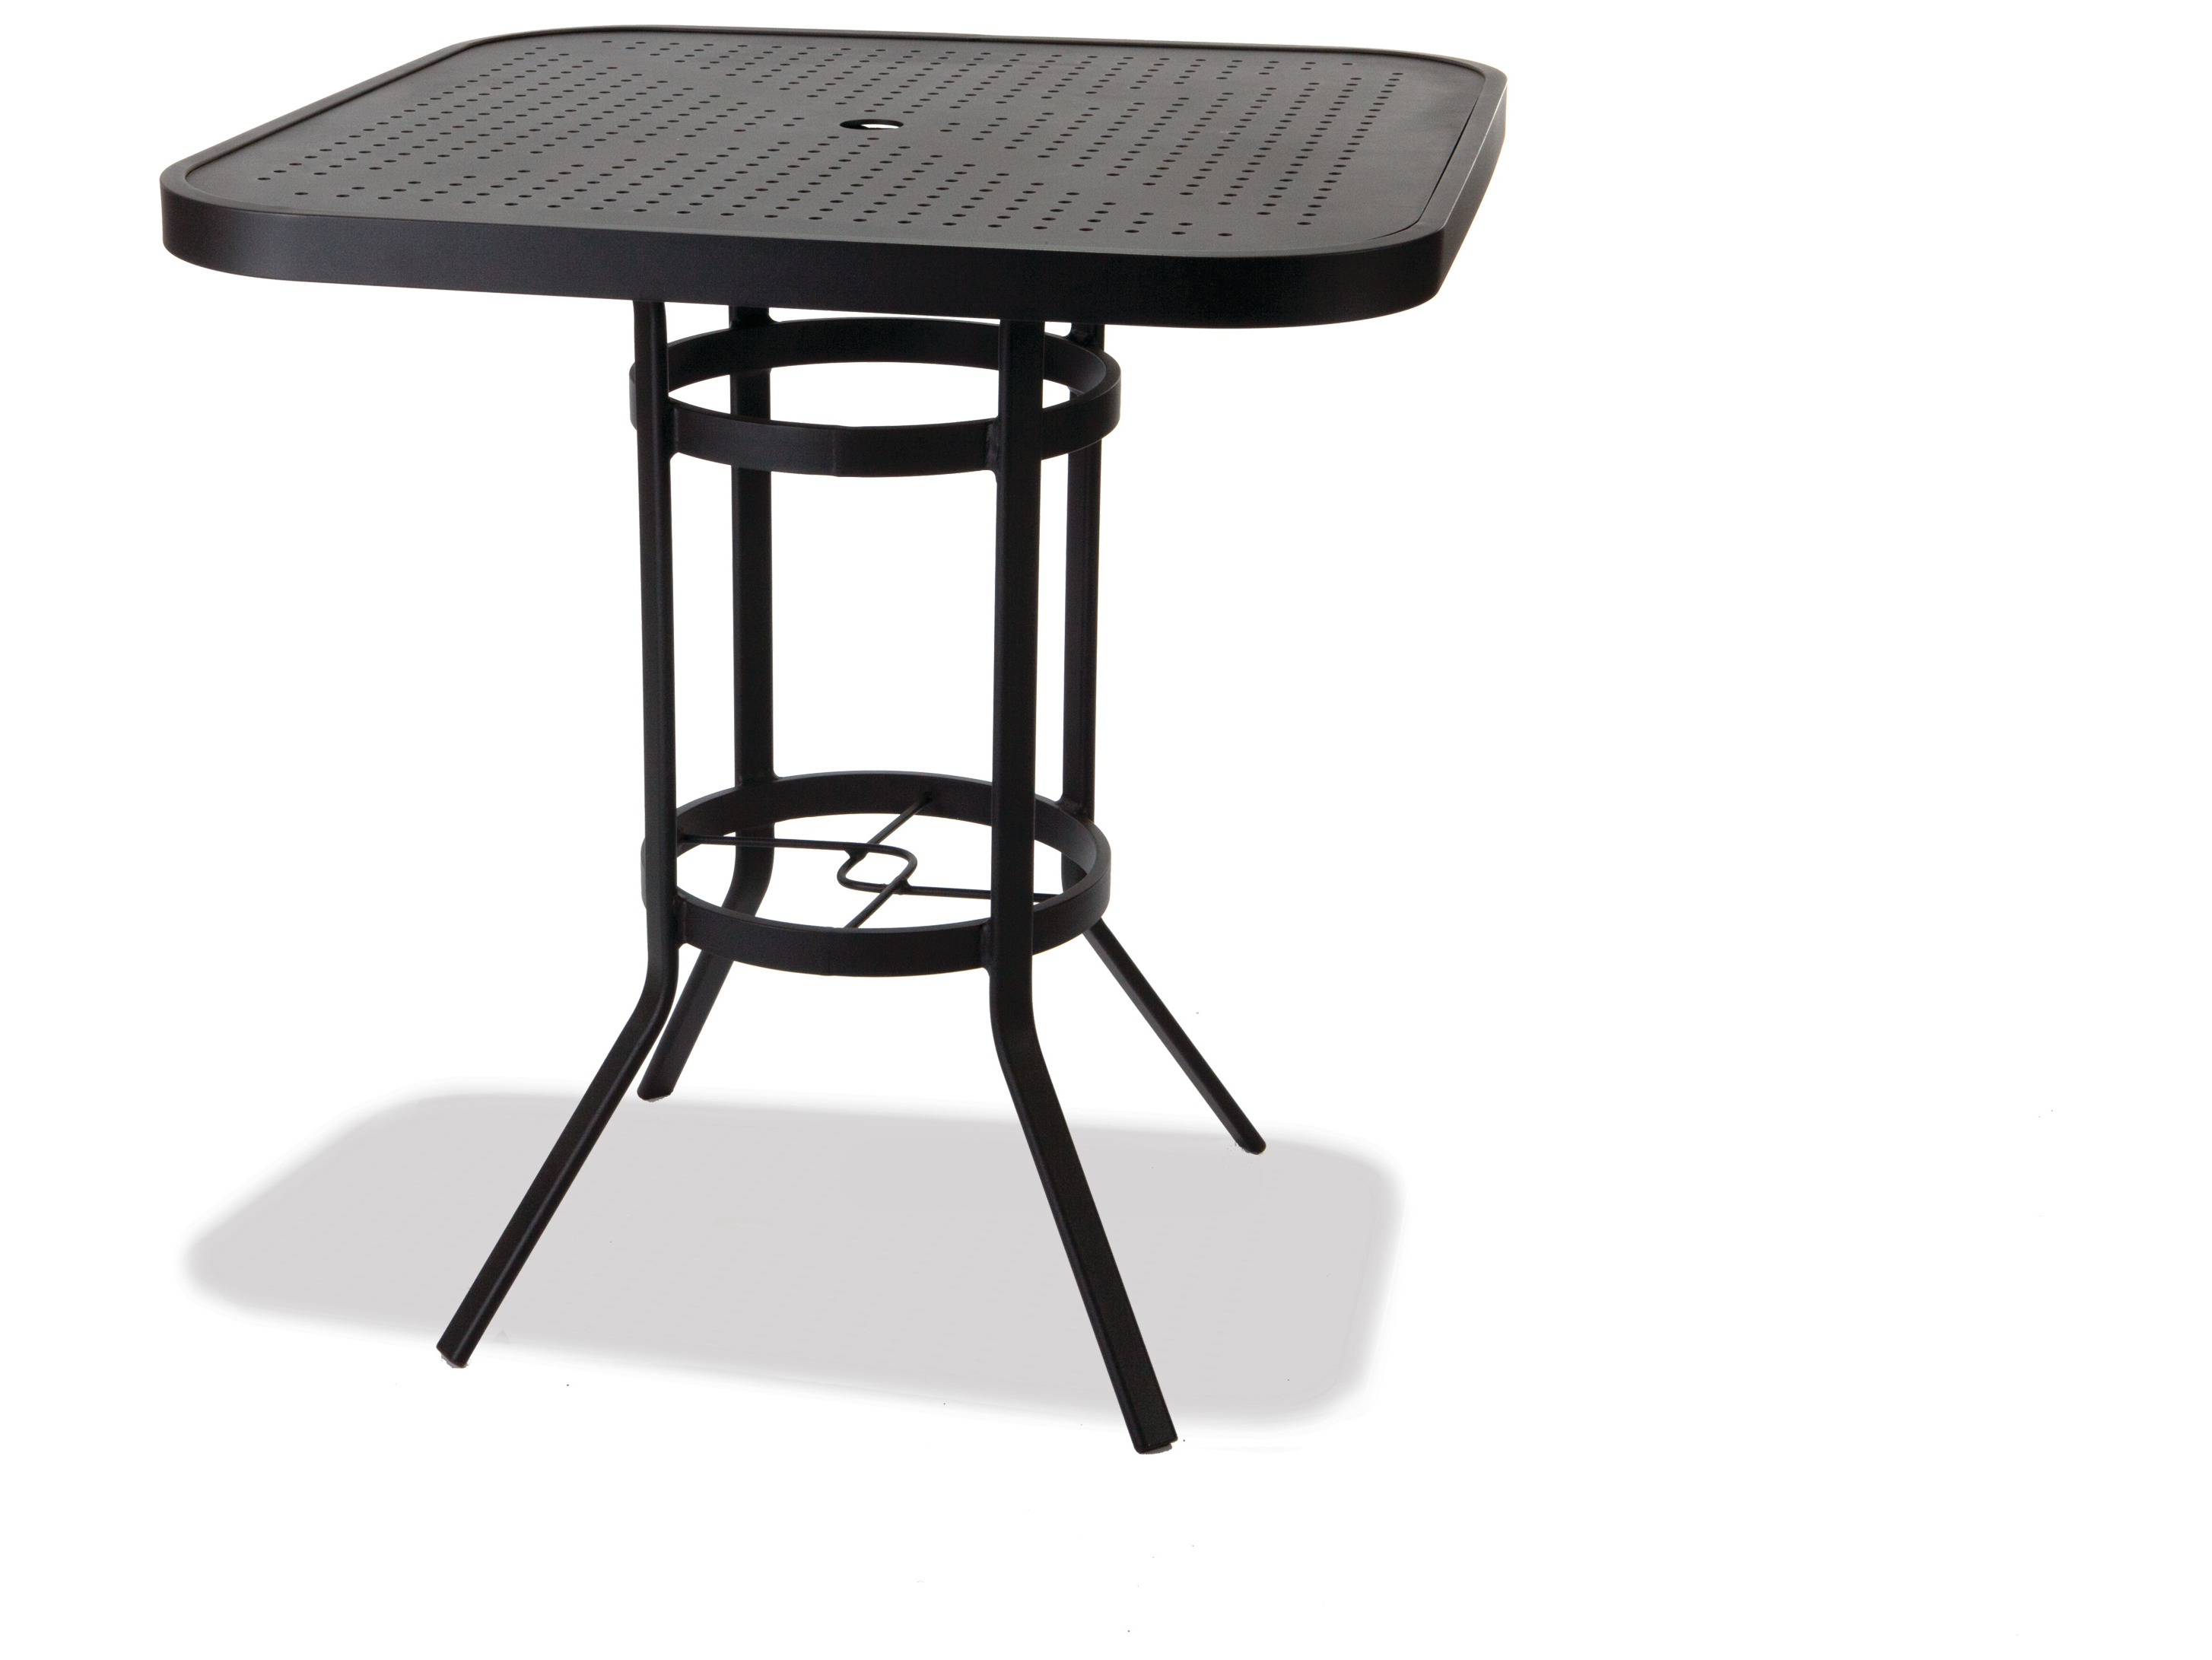 winston stamped aluminum 36 39 39 square metal bar table with umbrella hole m8136hstuq. Black Bedroom Furniture Sets. Home Design Ideas